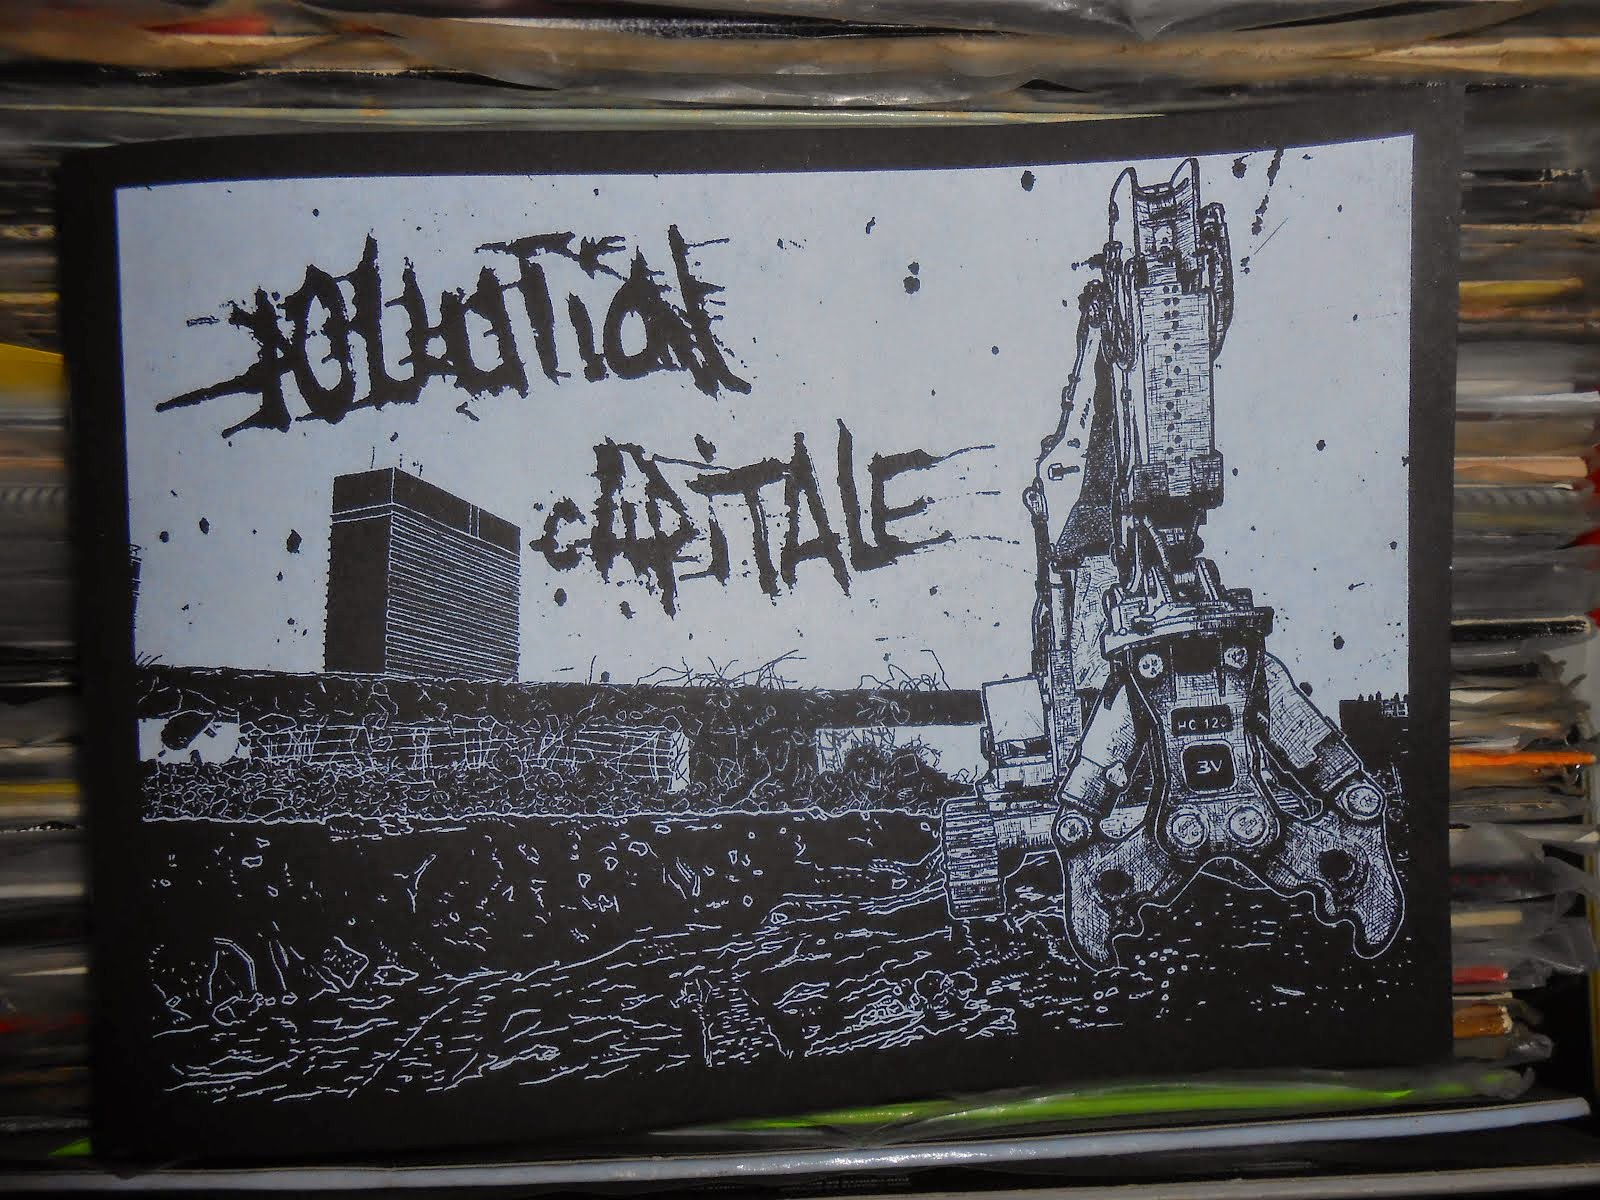 pollution capitale (dvd zine)